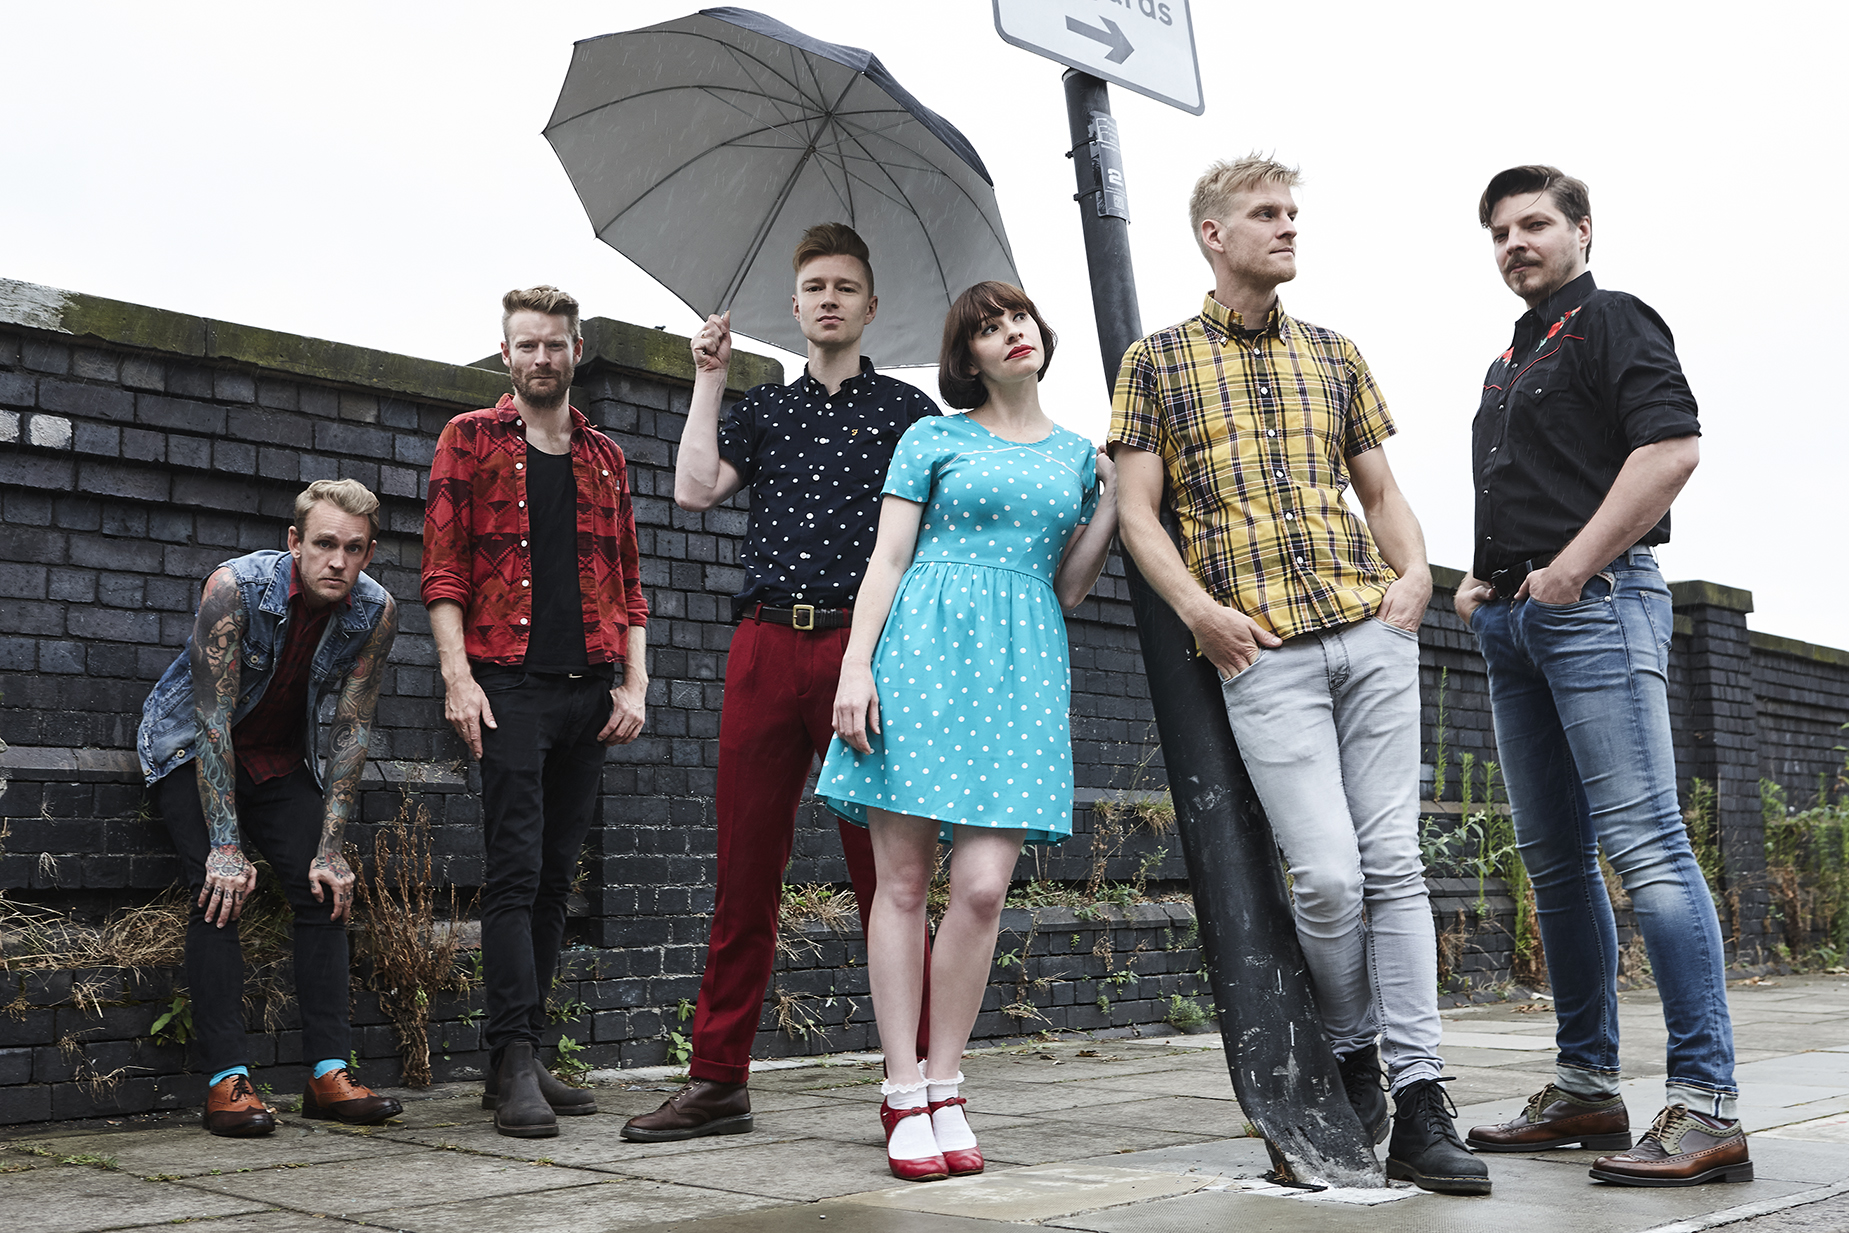 Skinny Lister - image by David Edwards